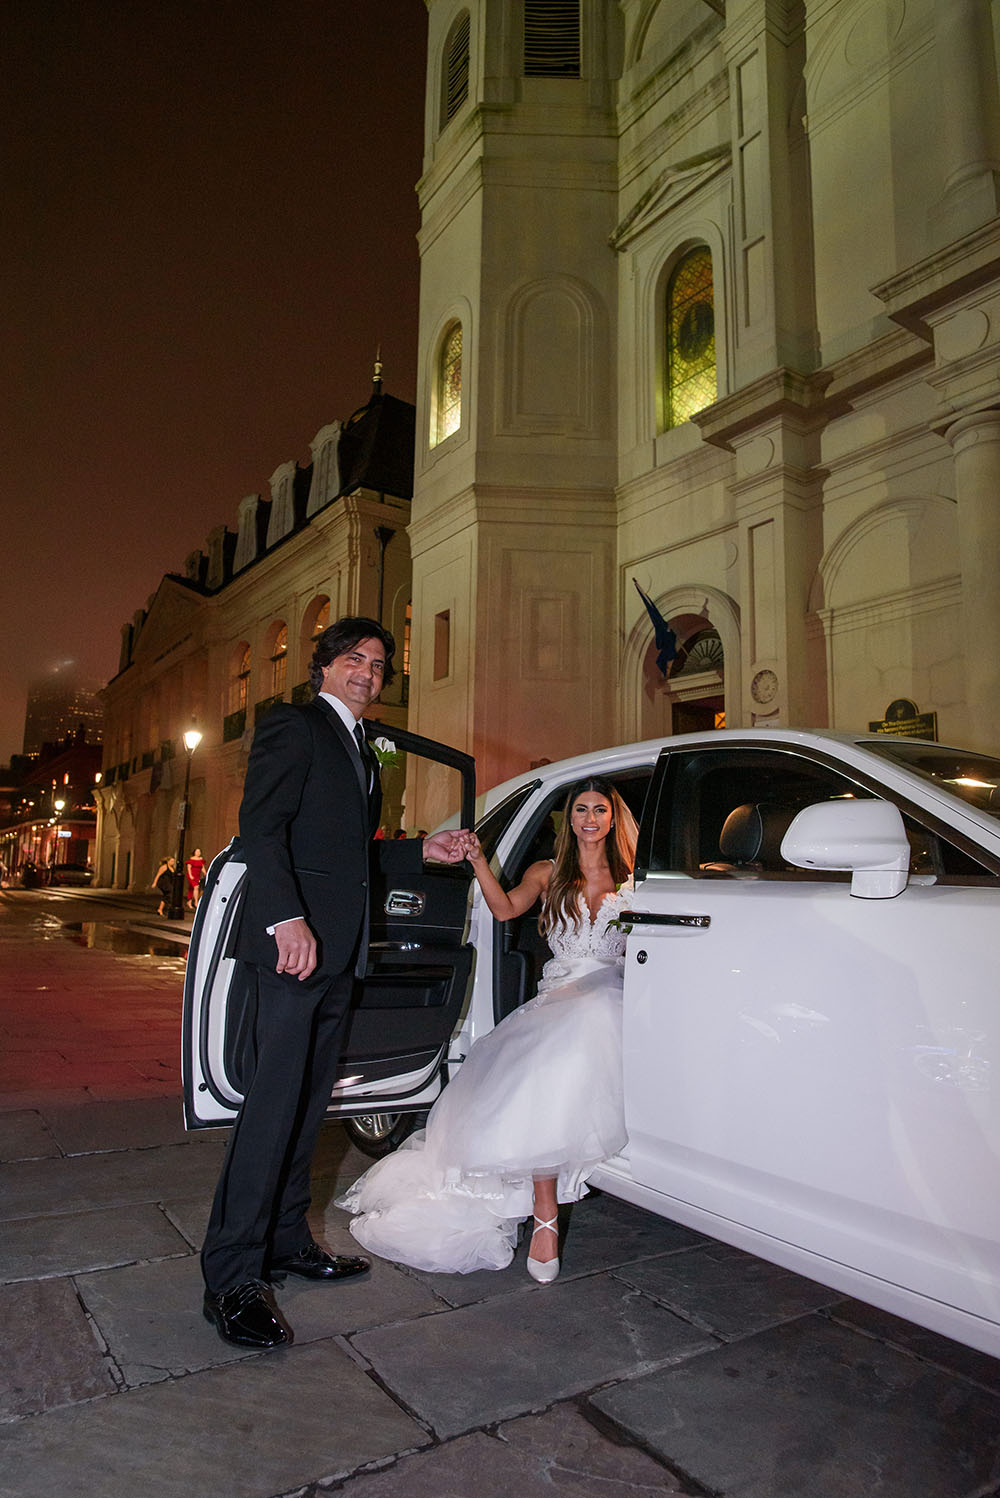 The bride getting out of the rolls royce just before her wedding